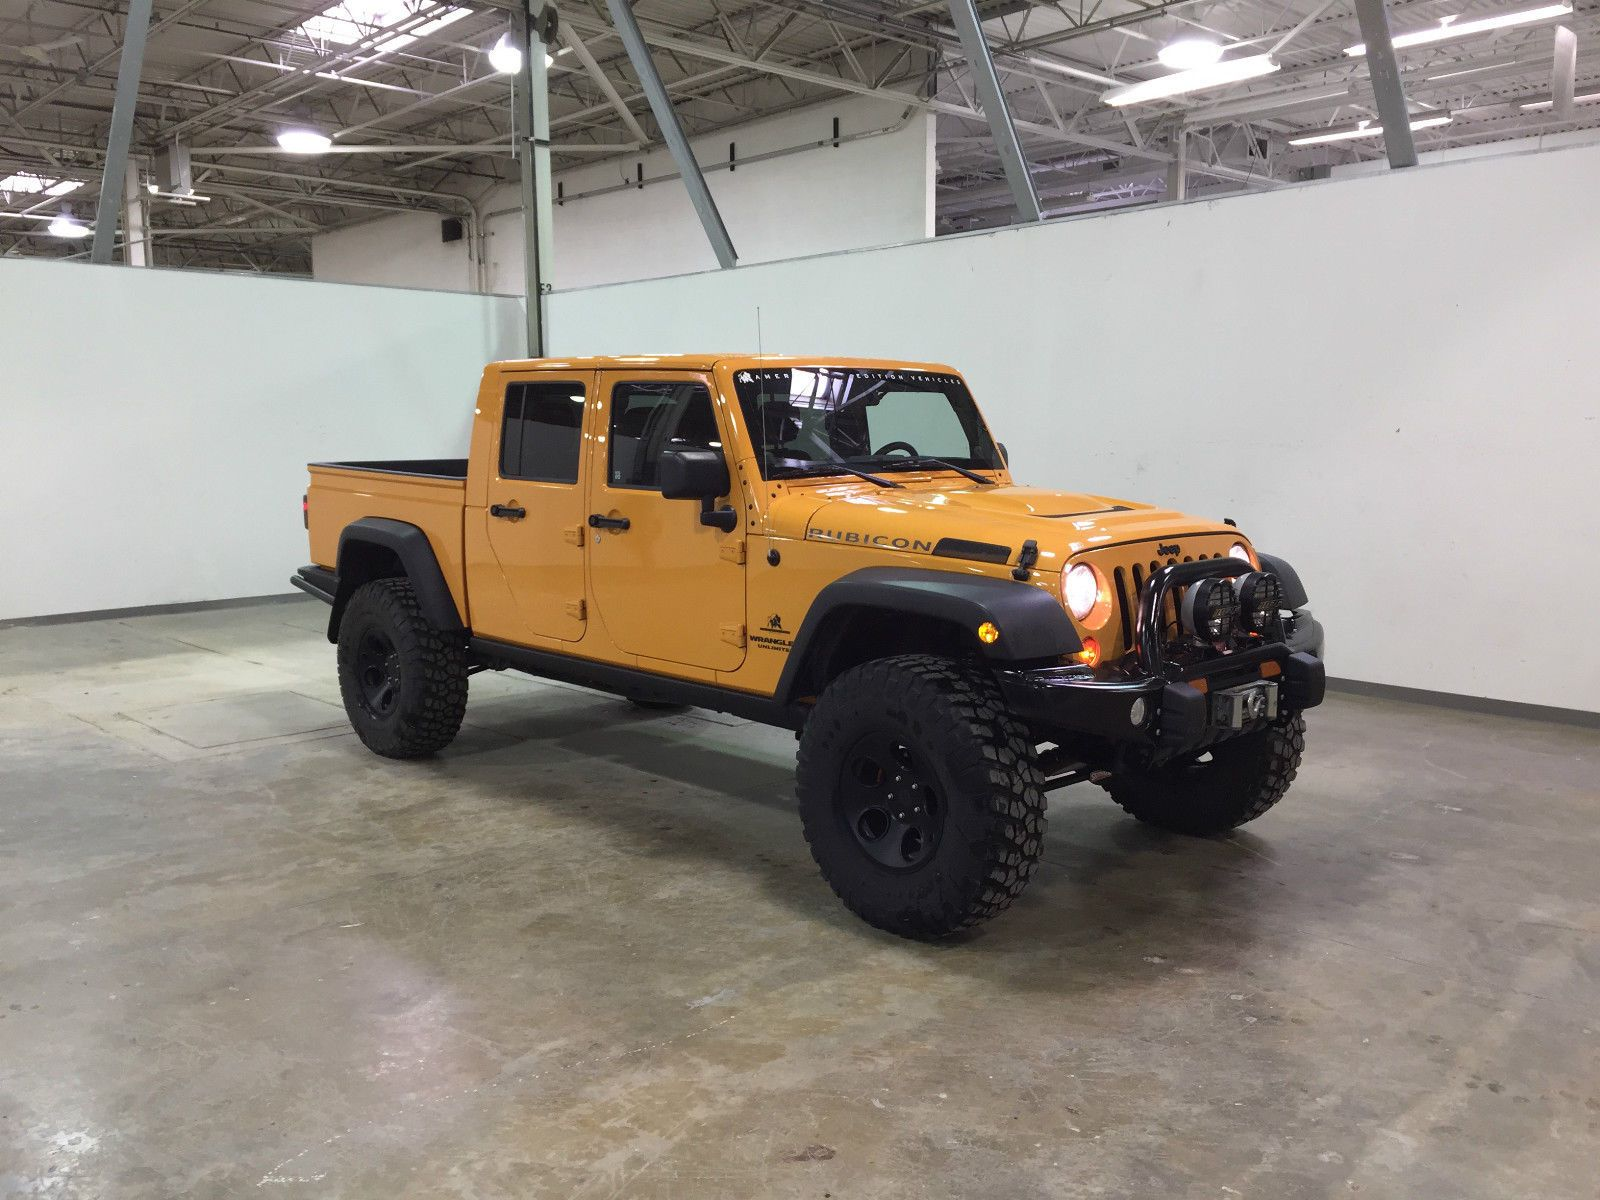 Jeep Wrangler Brute Double Cab Truck Dc350 Ebay Jeep Brute